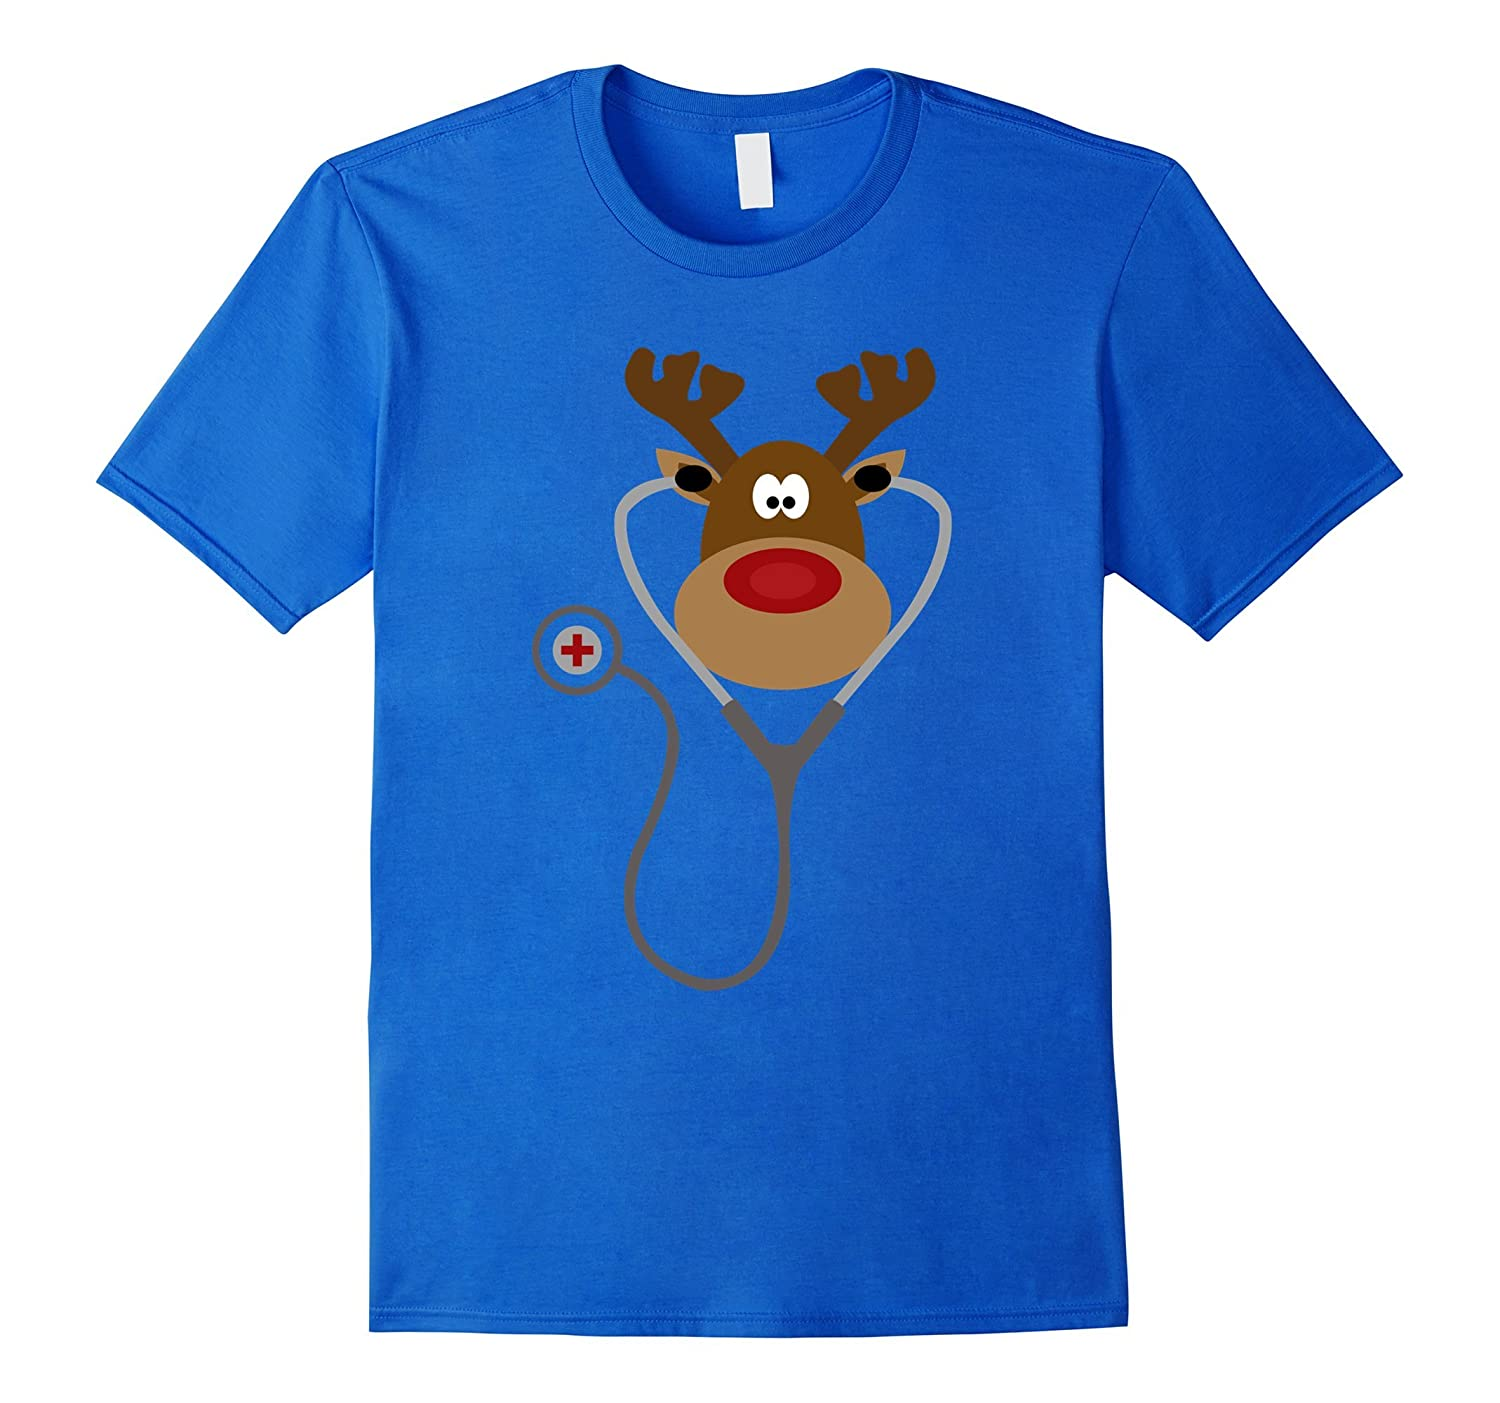 NURSE REINDEER Funny Cute Christmas T Shirt Nursing Holiday-FL